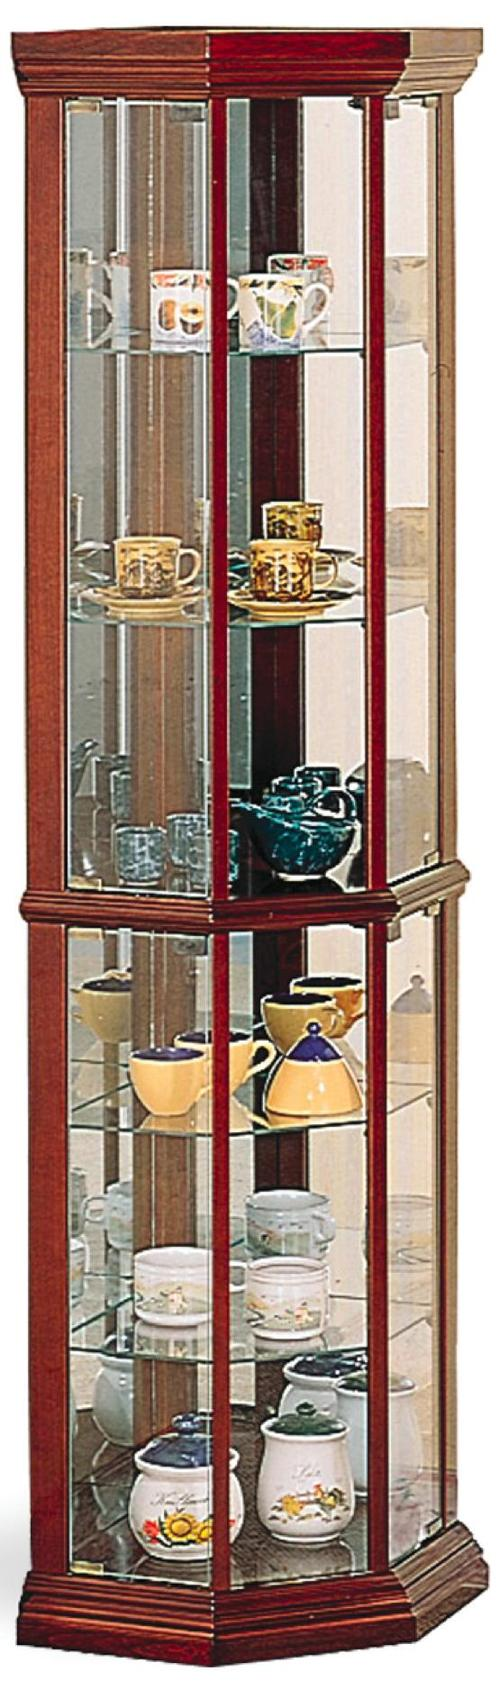 Coaster Curio Cabinets Solid Wood Cherry Glass Corner Curio ...